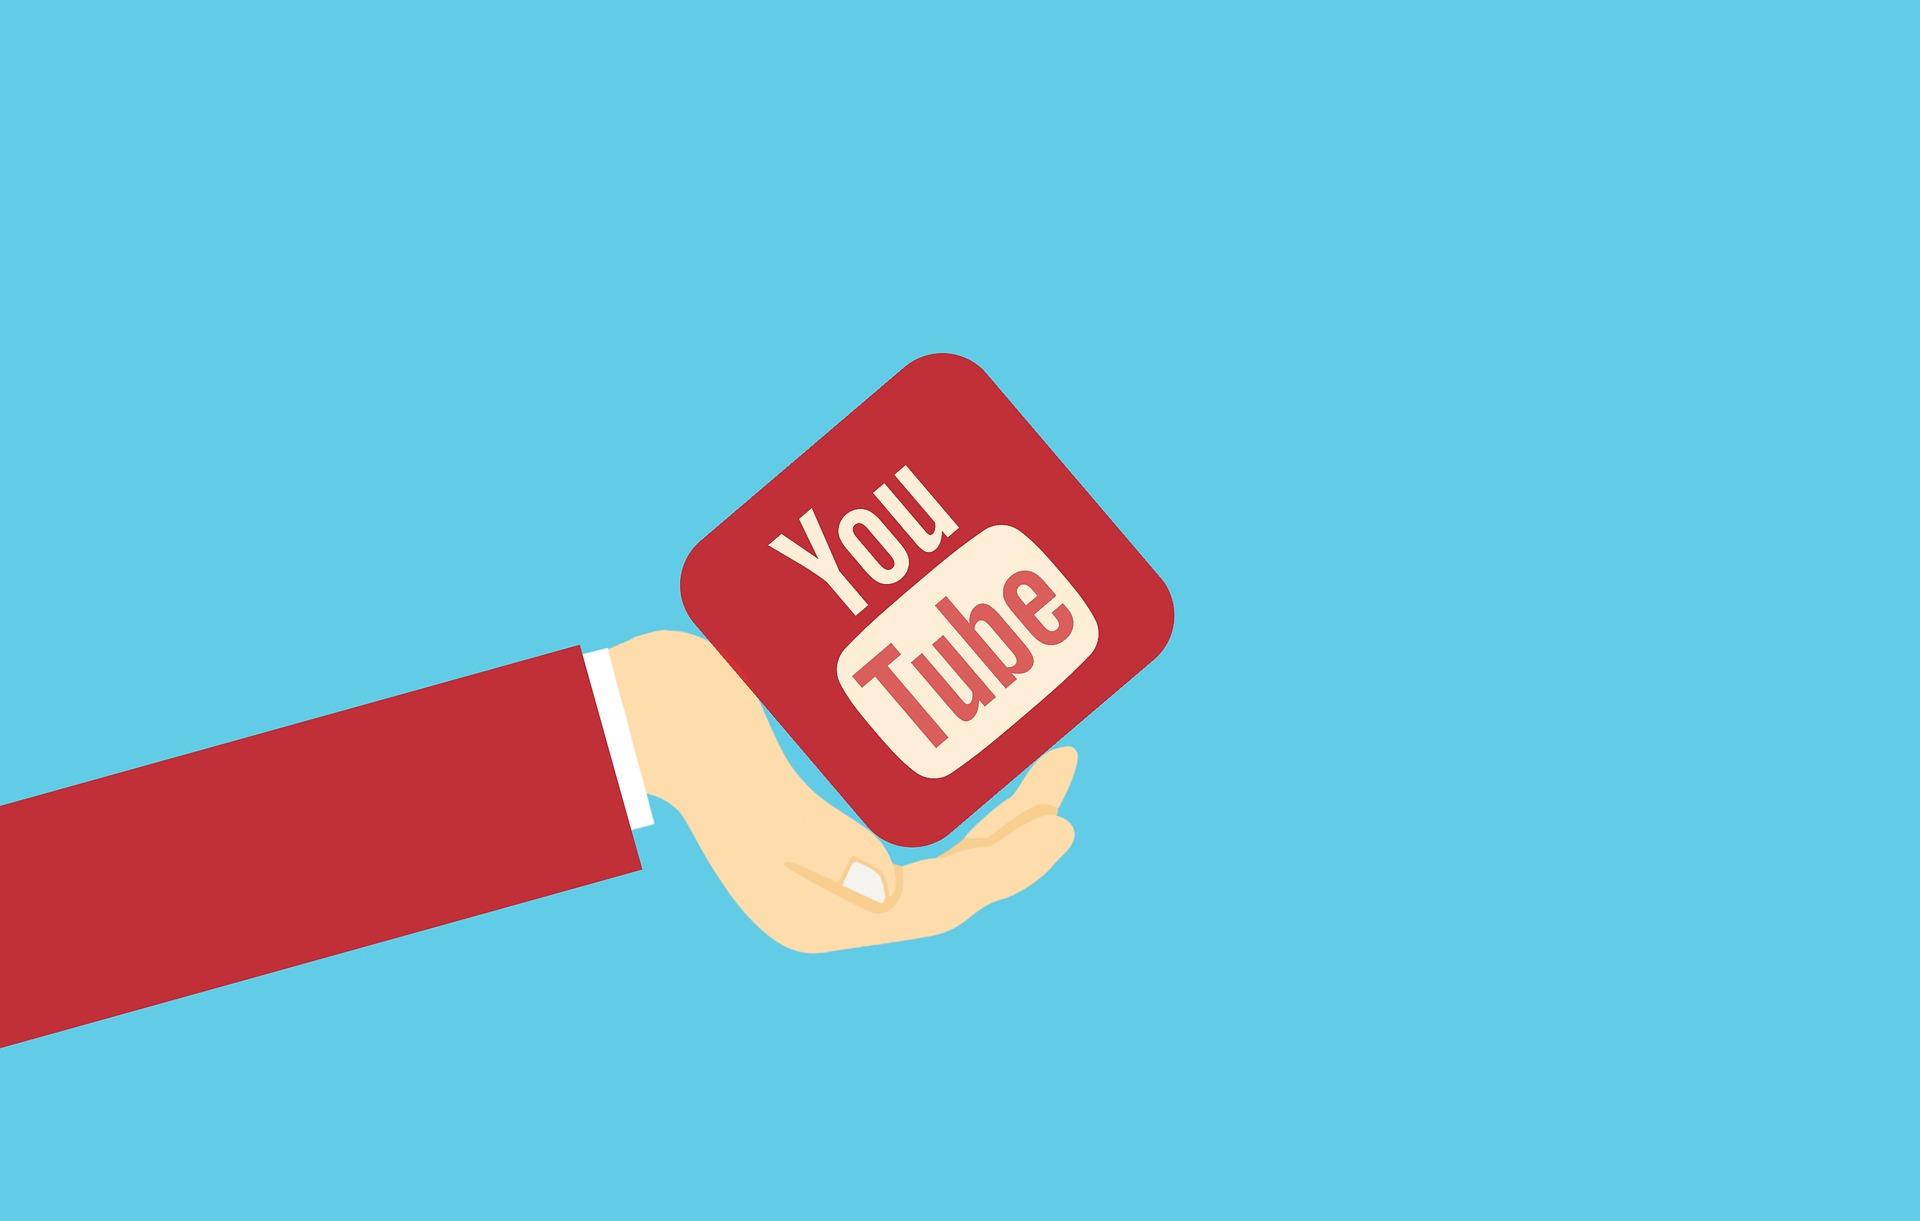 youtube-marketing-graphic-image-logo